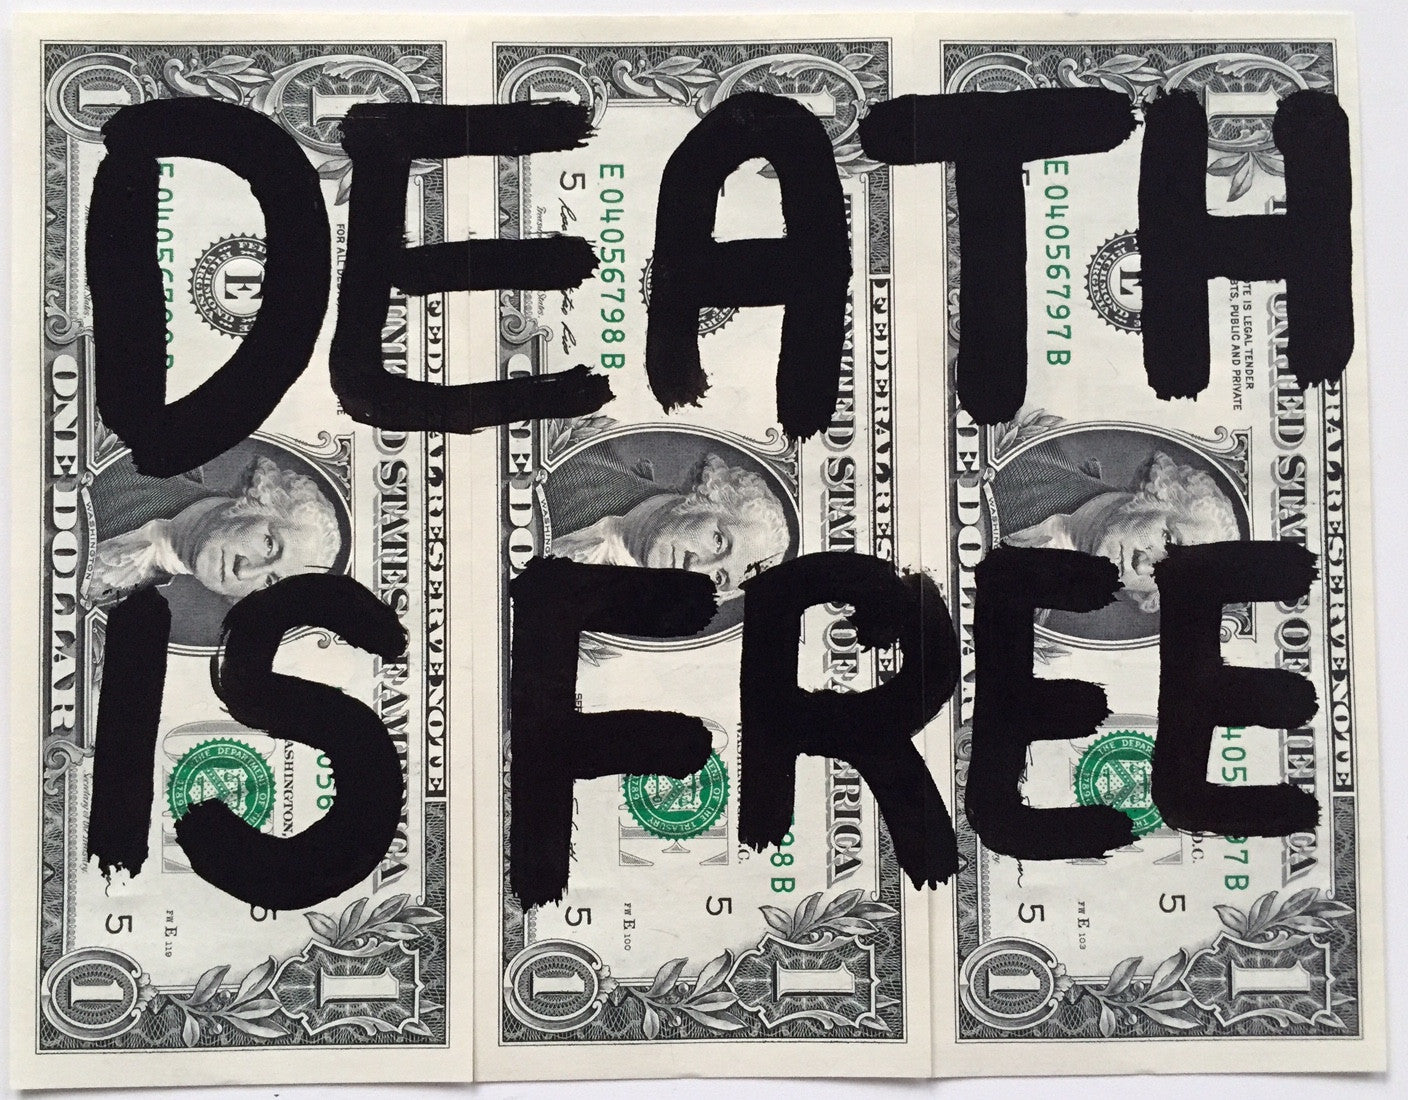 $1 DEATH IS FREE (Pre-order)